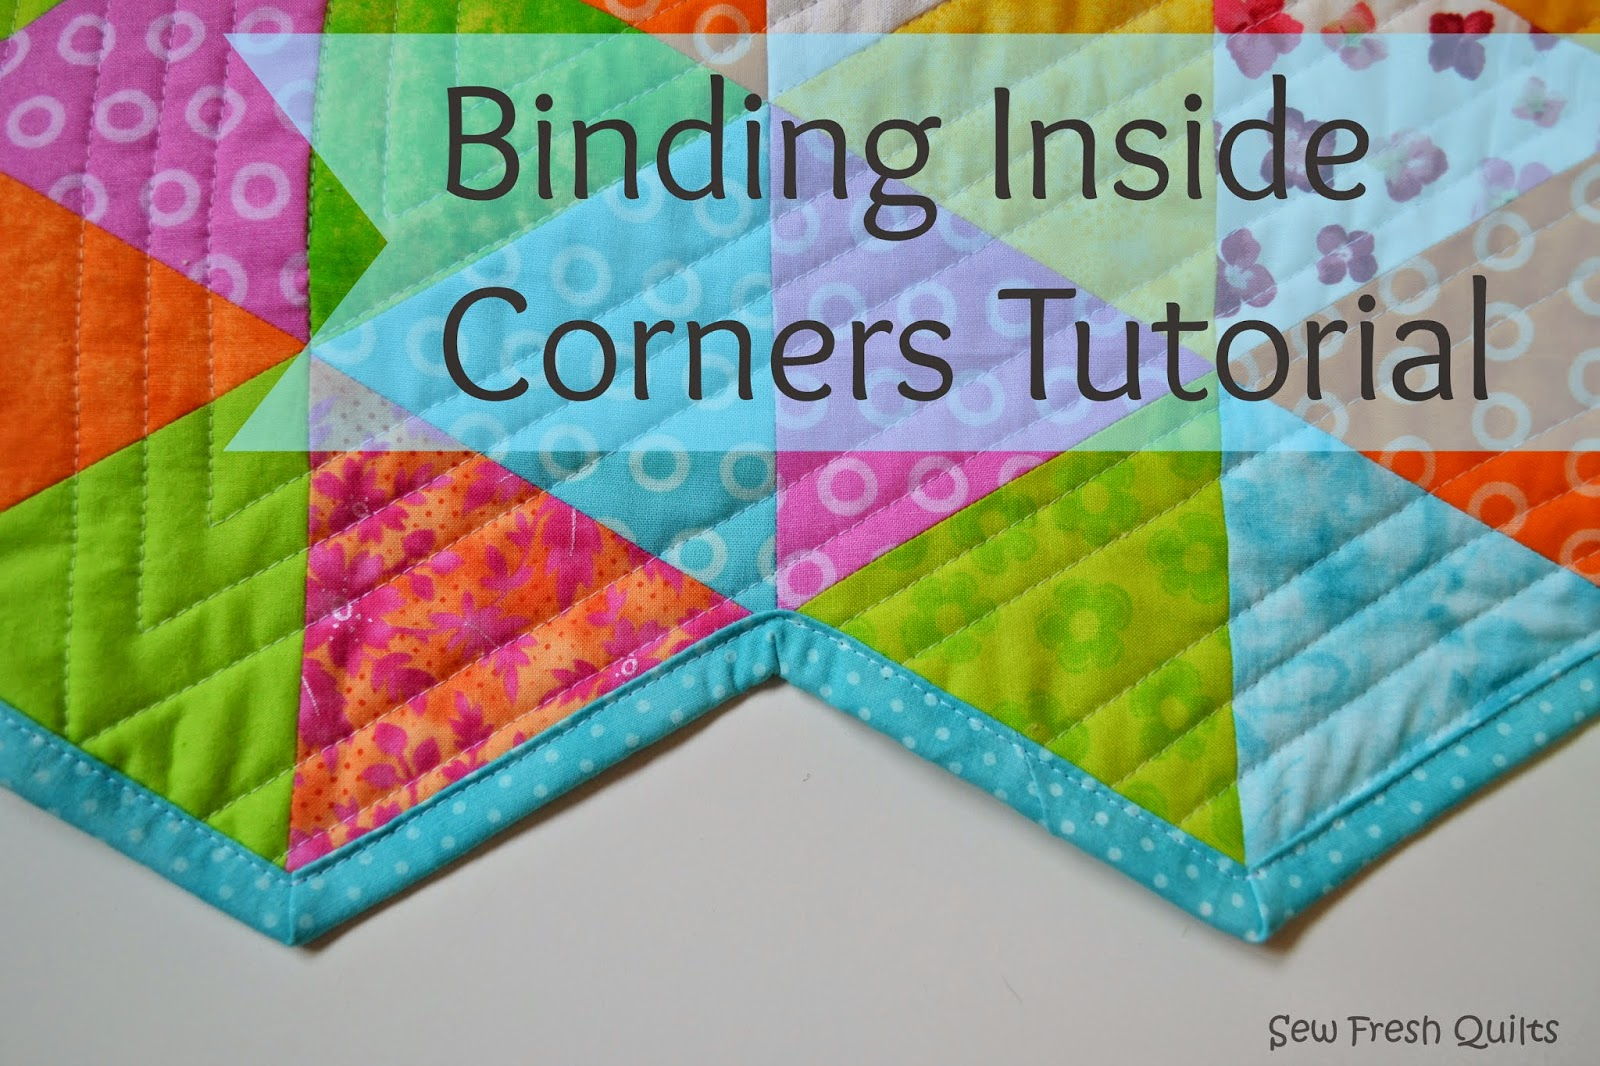 http://sewfreshquilts.blogspot.ca/2014/04/binding-inside-corners-tutorial.html